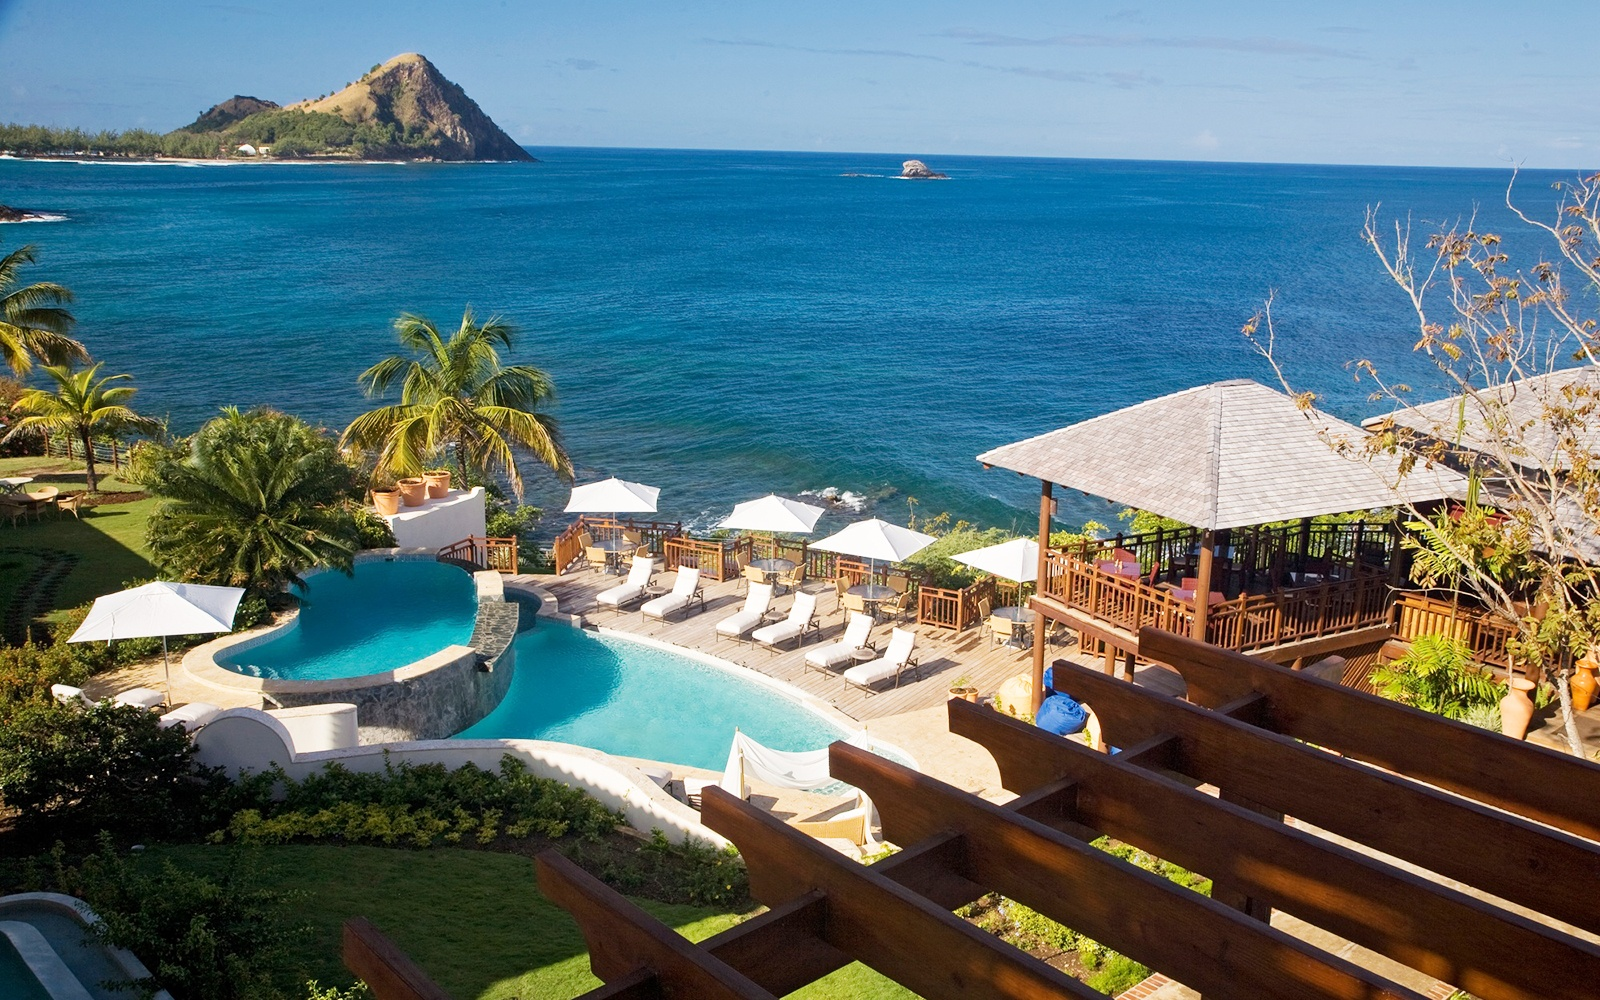 Guest Pool At Cap Maison Resort, St. Lucia Good Ideas